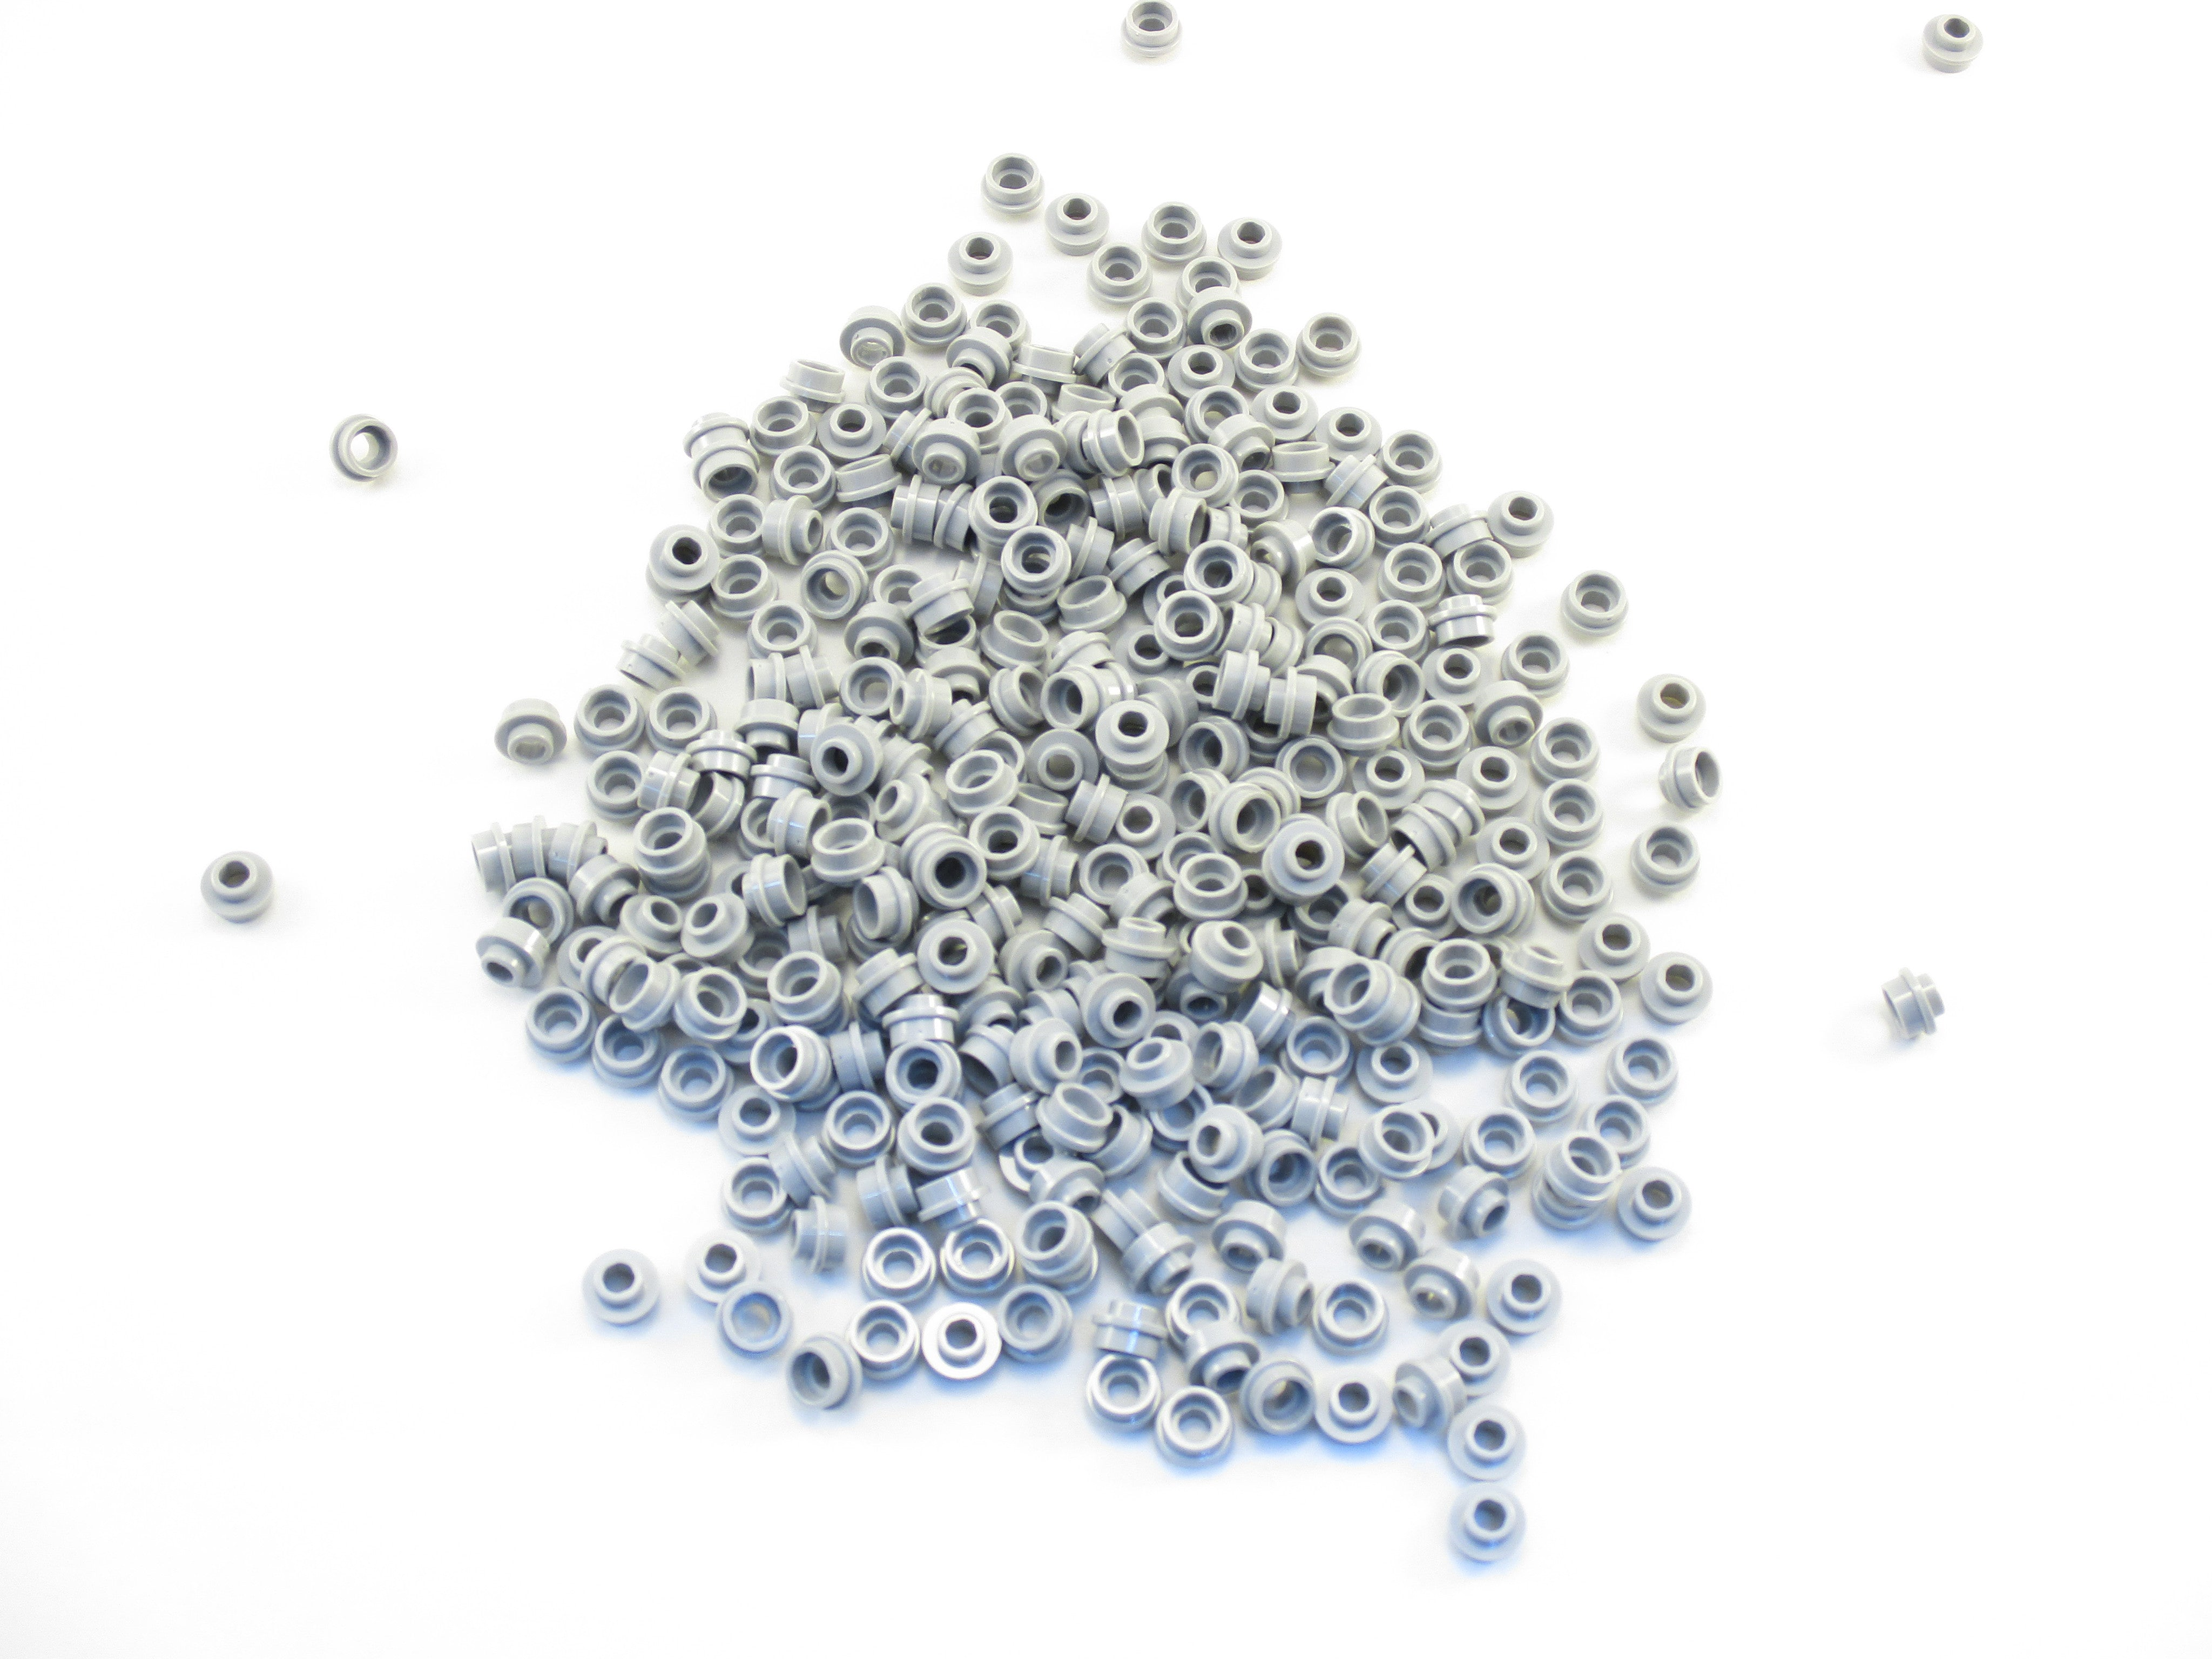 LEGO Light Bluish Gray Plate Round 1x1 Open Stud Lot of 100 Parts Pieces 85861